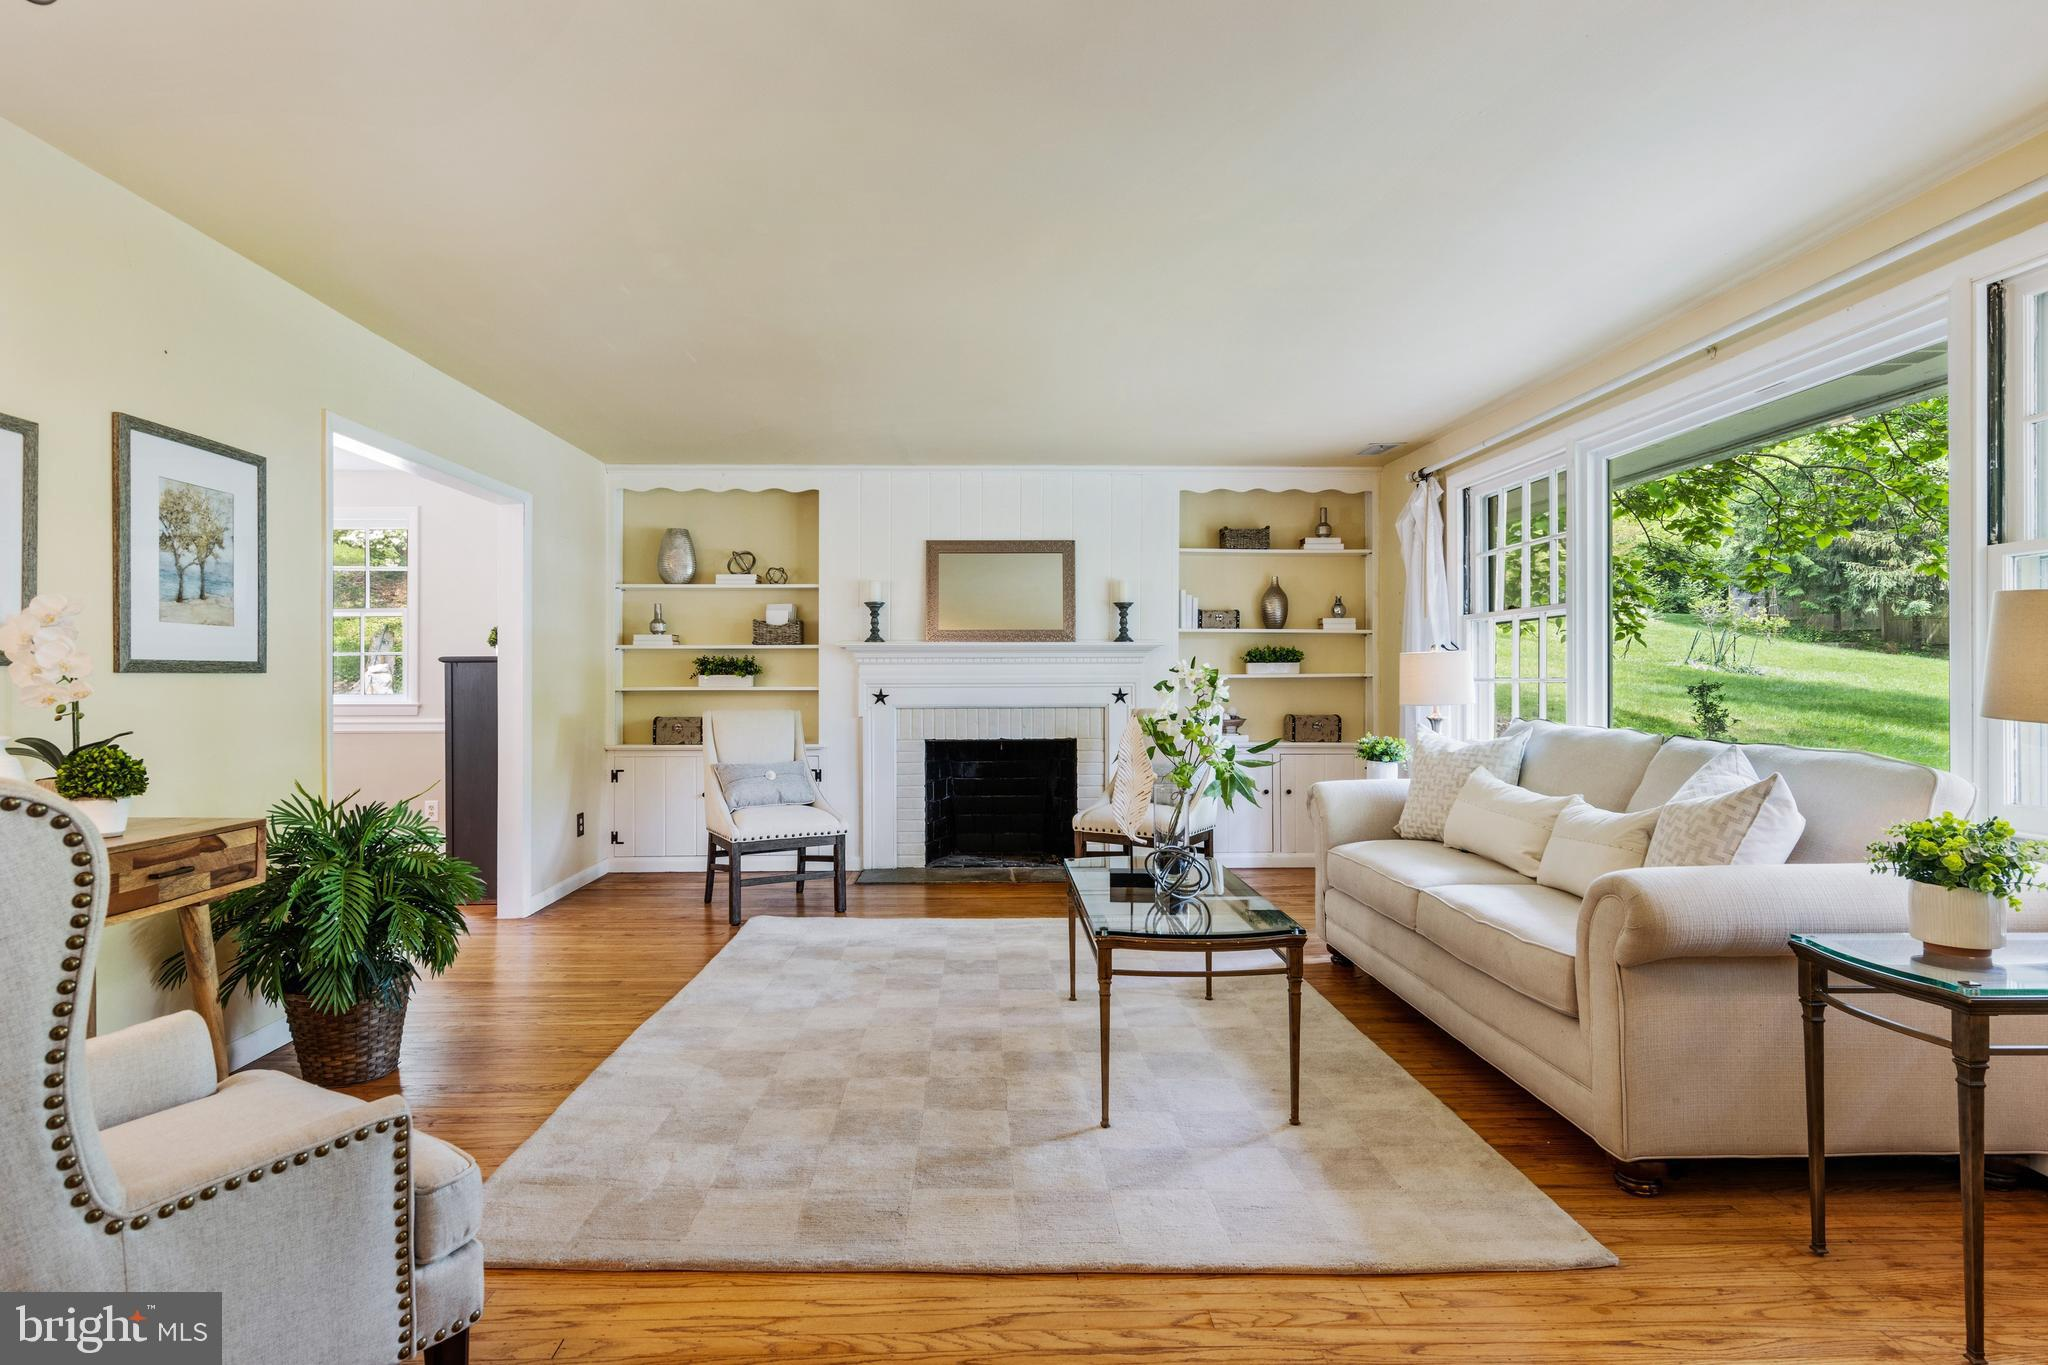 SHOWINGS WILL ONLY TAKE PLACE DURING THE OPEN HOUSE SUNDAY 6/13 FROM 1-3PM. Charm abounds in this updated and well-maintained split-level home located at the end of a quiet cul-de-sac in Devon. The first floorcontains a sun drenchedand spacious living room with oversizedwindows looking out on the picturesque front lawn.The spacious living room  is centered around a wood fireplace whichflowsinto the dining room with hardwoods throughout. Open to the dining room is the kitchen which was updated in 2019. The kitchen contains new white shaker style cabinets, new countertops, new floors, and appliances. The kitchen has access to one of two back patios-perfect for entertaining this summer! From the first floor, a flight of stairsleads to a laundry room/powder room and two large bonus rooms, currently used as an office and tv room; they can easily functionas a playroom or gym. The upstairs level features a large primary bedroom with en-suite bathroom and three well sized bedrooms with a hall bath. The well landscaped backyard featurestwo patios, an outdoor stone kitchen and beautiful backyard!Close to Devon Yard, Jenkins Arboretum, and the Devon Train station! Zoned for award-winning T/E schools! Recent upgradesinclude a new roof, two car garage and a shed.